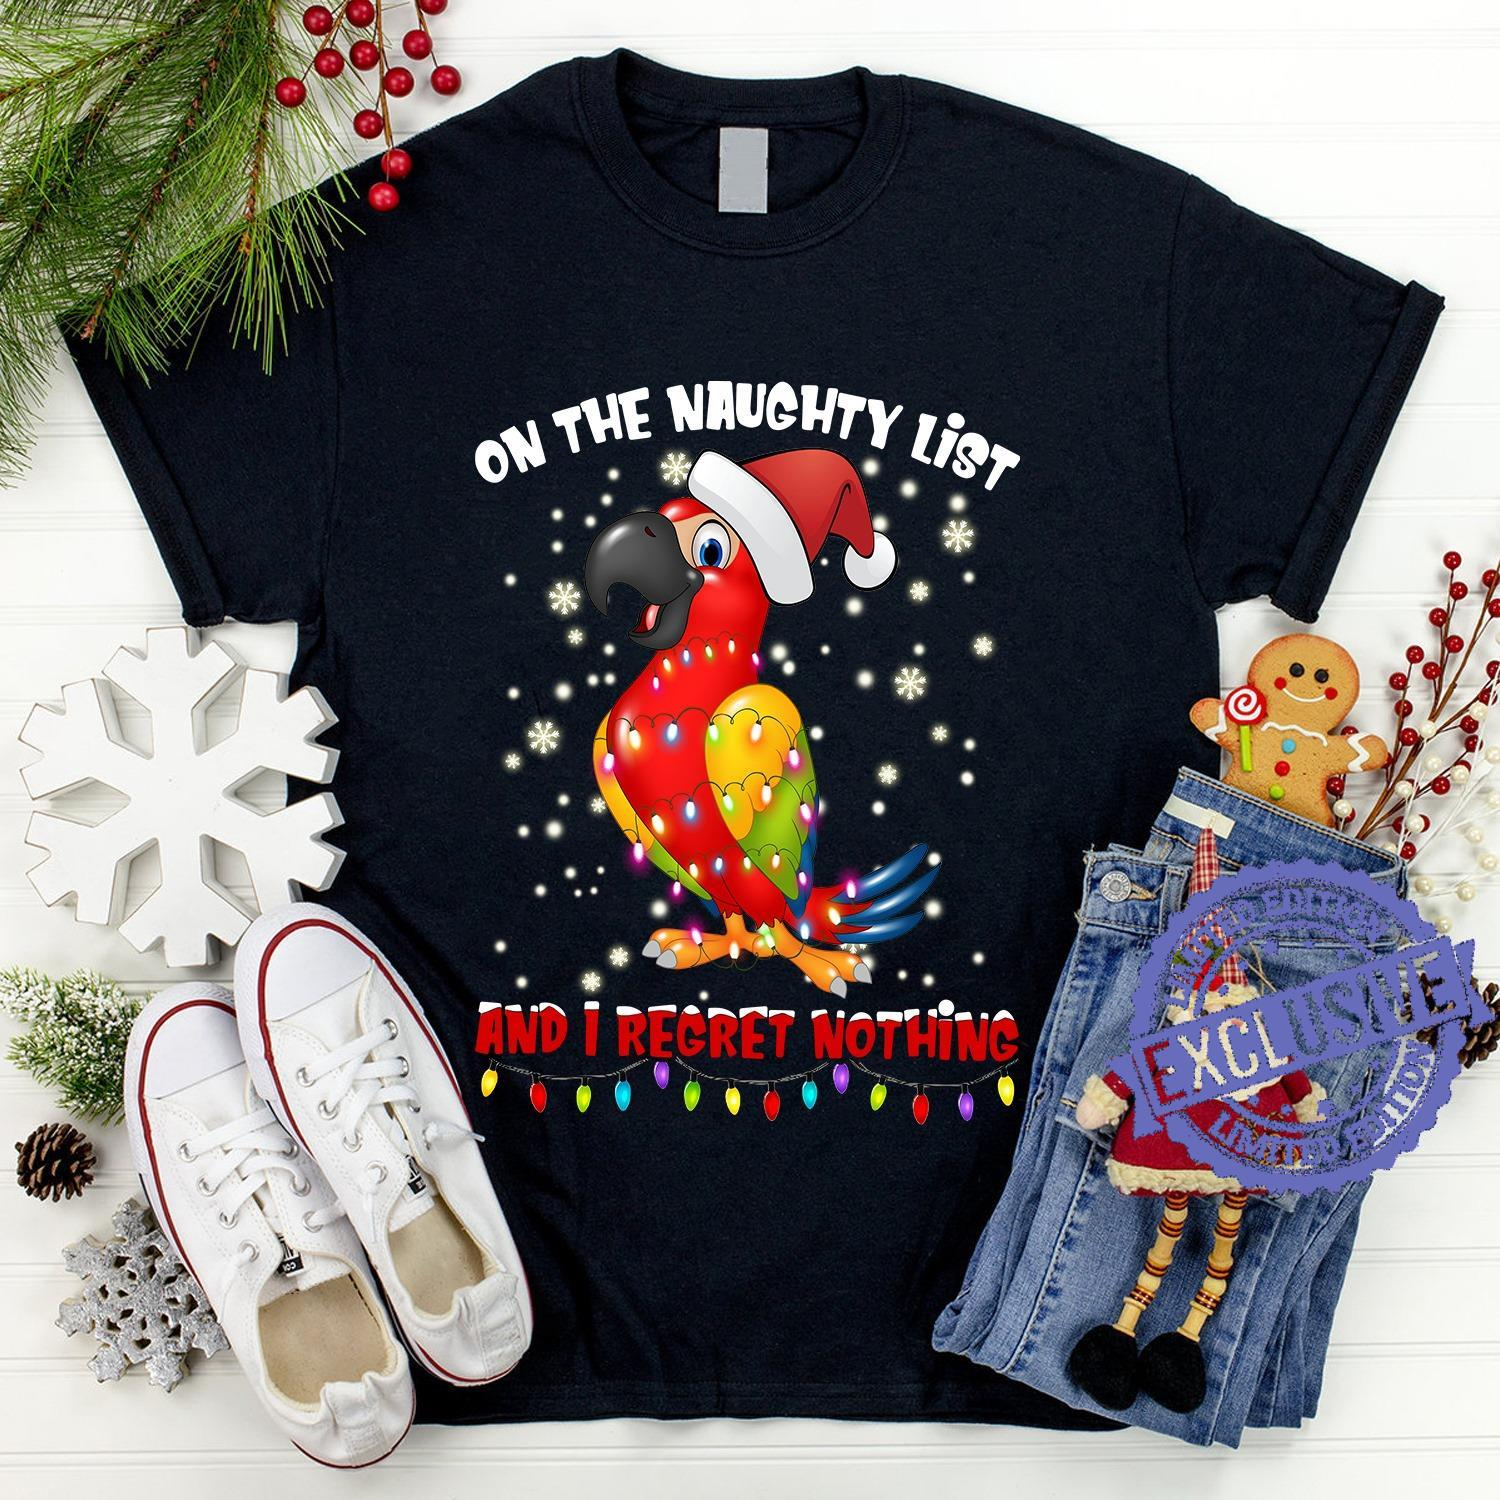 On the naughty list and i regret nothing shirt